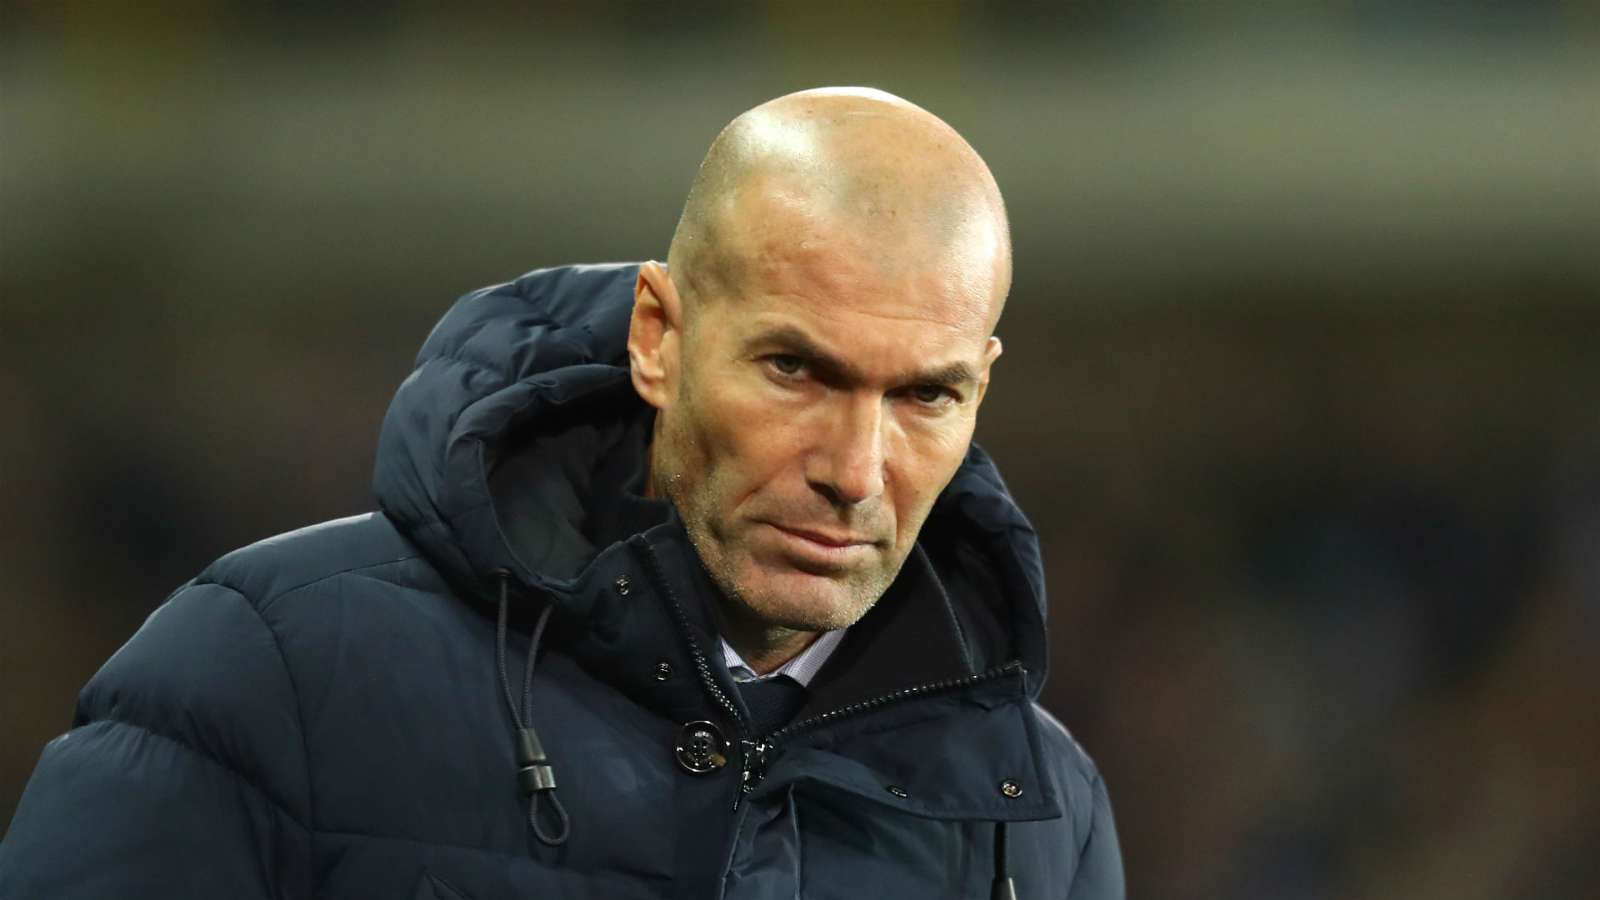 Zidane: About the Champions League draw - Real Madrid will overtake Liverpool